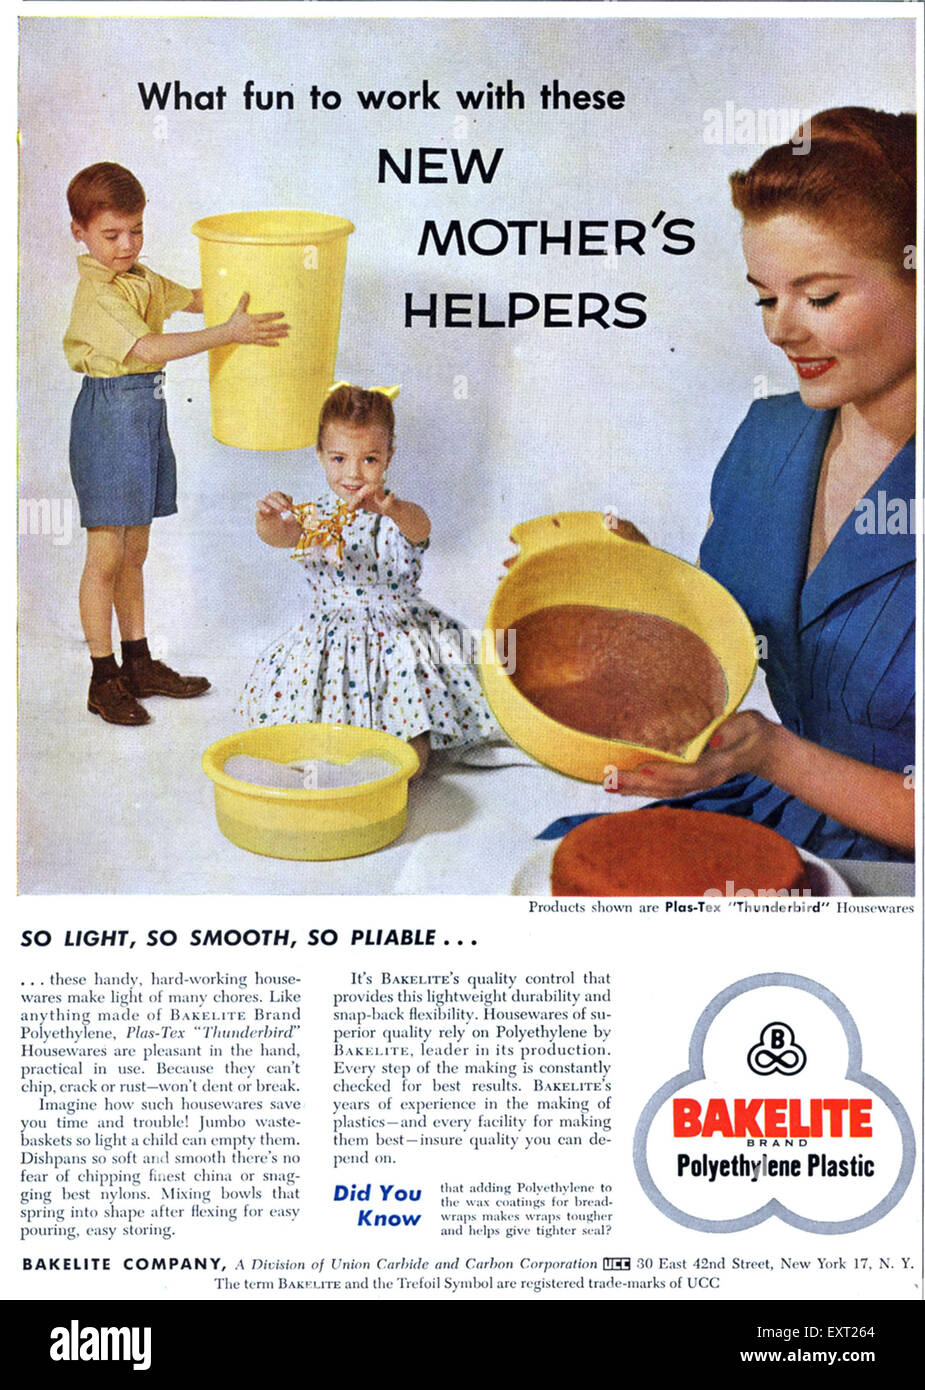 1950s USA Bakelite Magazine Advert - Stock Image